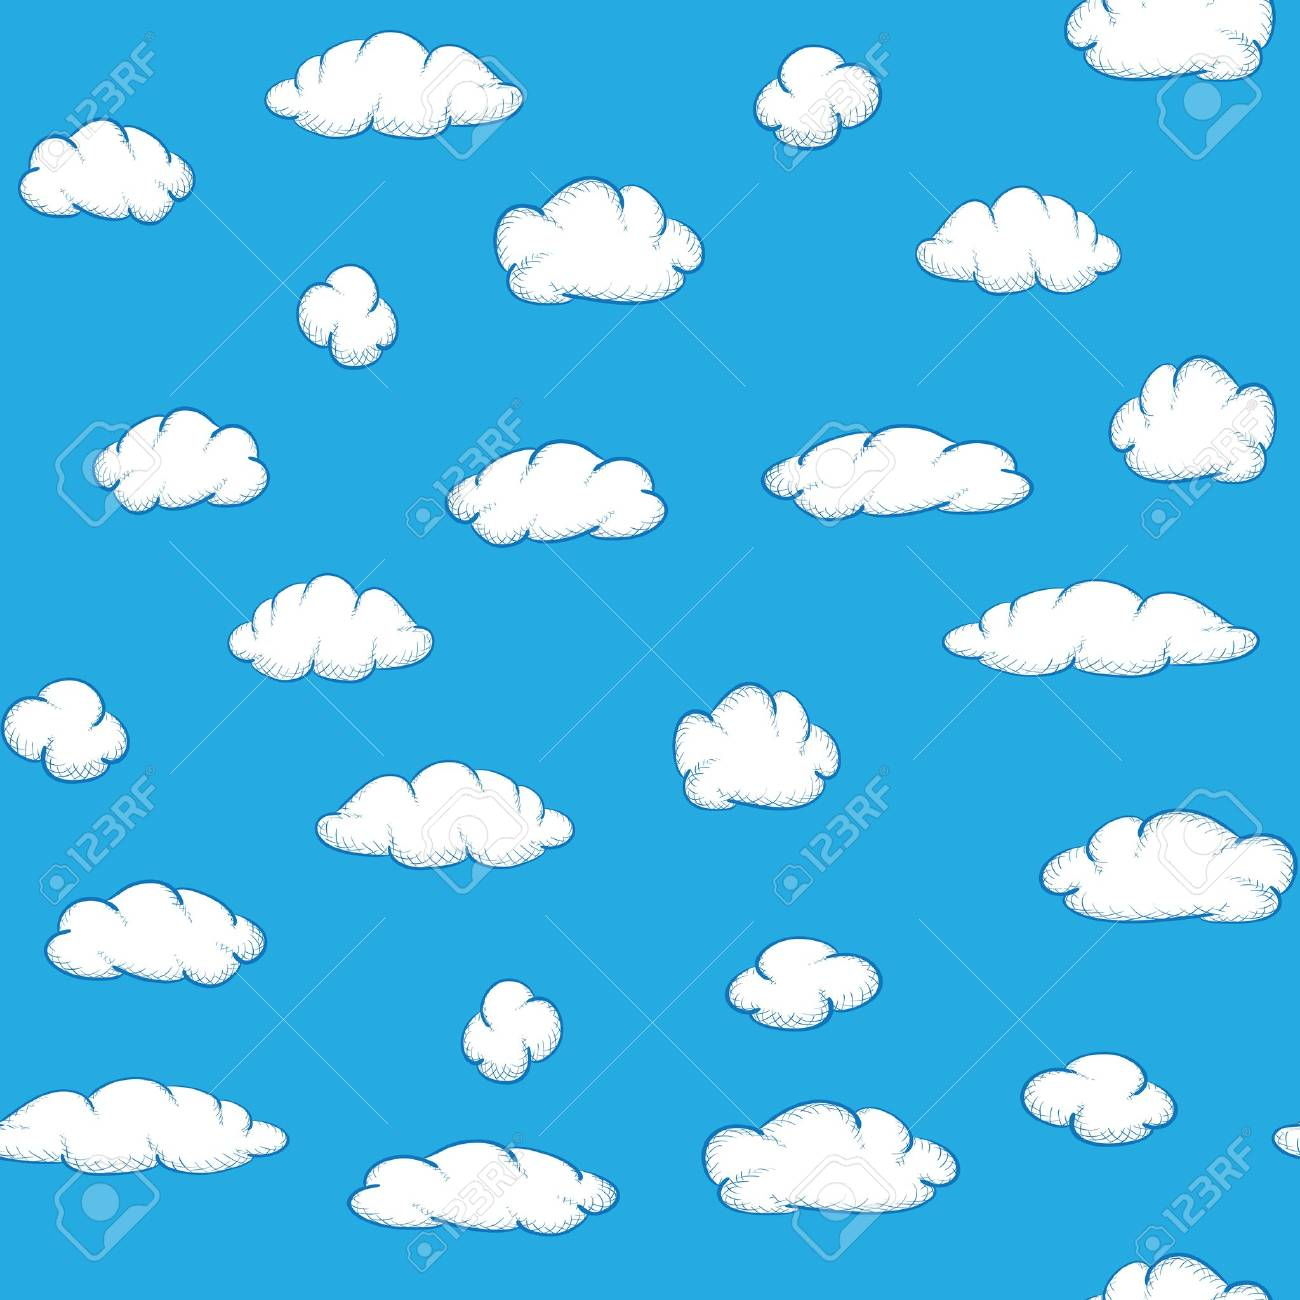 Clipart blue sky graphic library download Blue sky clipart 7 » Clipart Station graphic library download